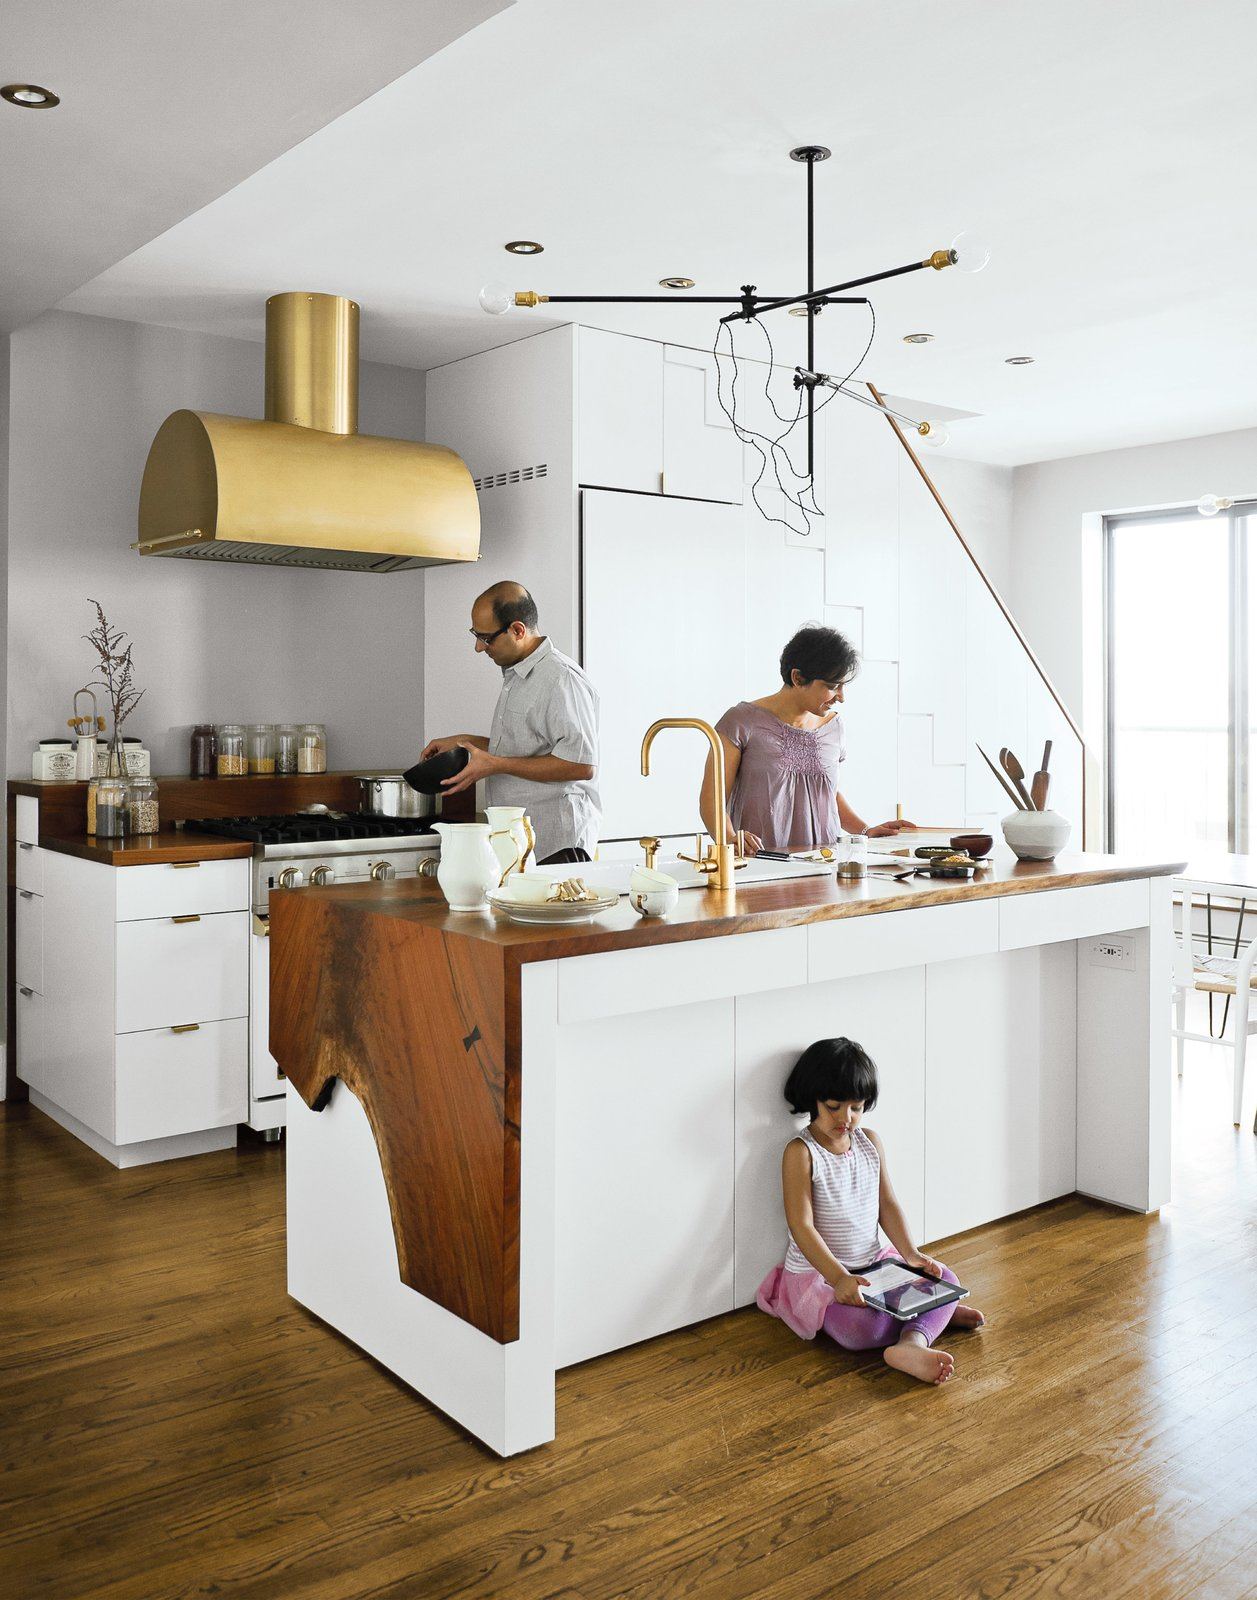 Kitchen, White Cabinet, Medium Hardwood Floor, Wood Counter, Metal Backsplashe, Pendant Lighting, Range Hood, Range, Recessed Lighting, Wall Oven, and Vessel Sink A couple takes a minimalist approach to their Brooklyn apartment, focusing on supple materials, subtle gradations of color, and custom finishes by local craftsmen. The Mandayam–Vohra family gathers under one of Workstead's signature three-arm chandeliers, shown here in its horizontal configuration. Bartenschlager designed the white cabinets and is responsible for the walnut counters both on the kitchen island and near the stove.    Photo 12 of 30 in These 30 White Kitchens Are Anything But Ordinary from A Minimal Yet Mighty Brooklyn Apartment